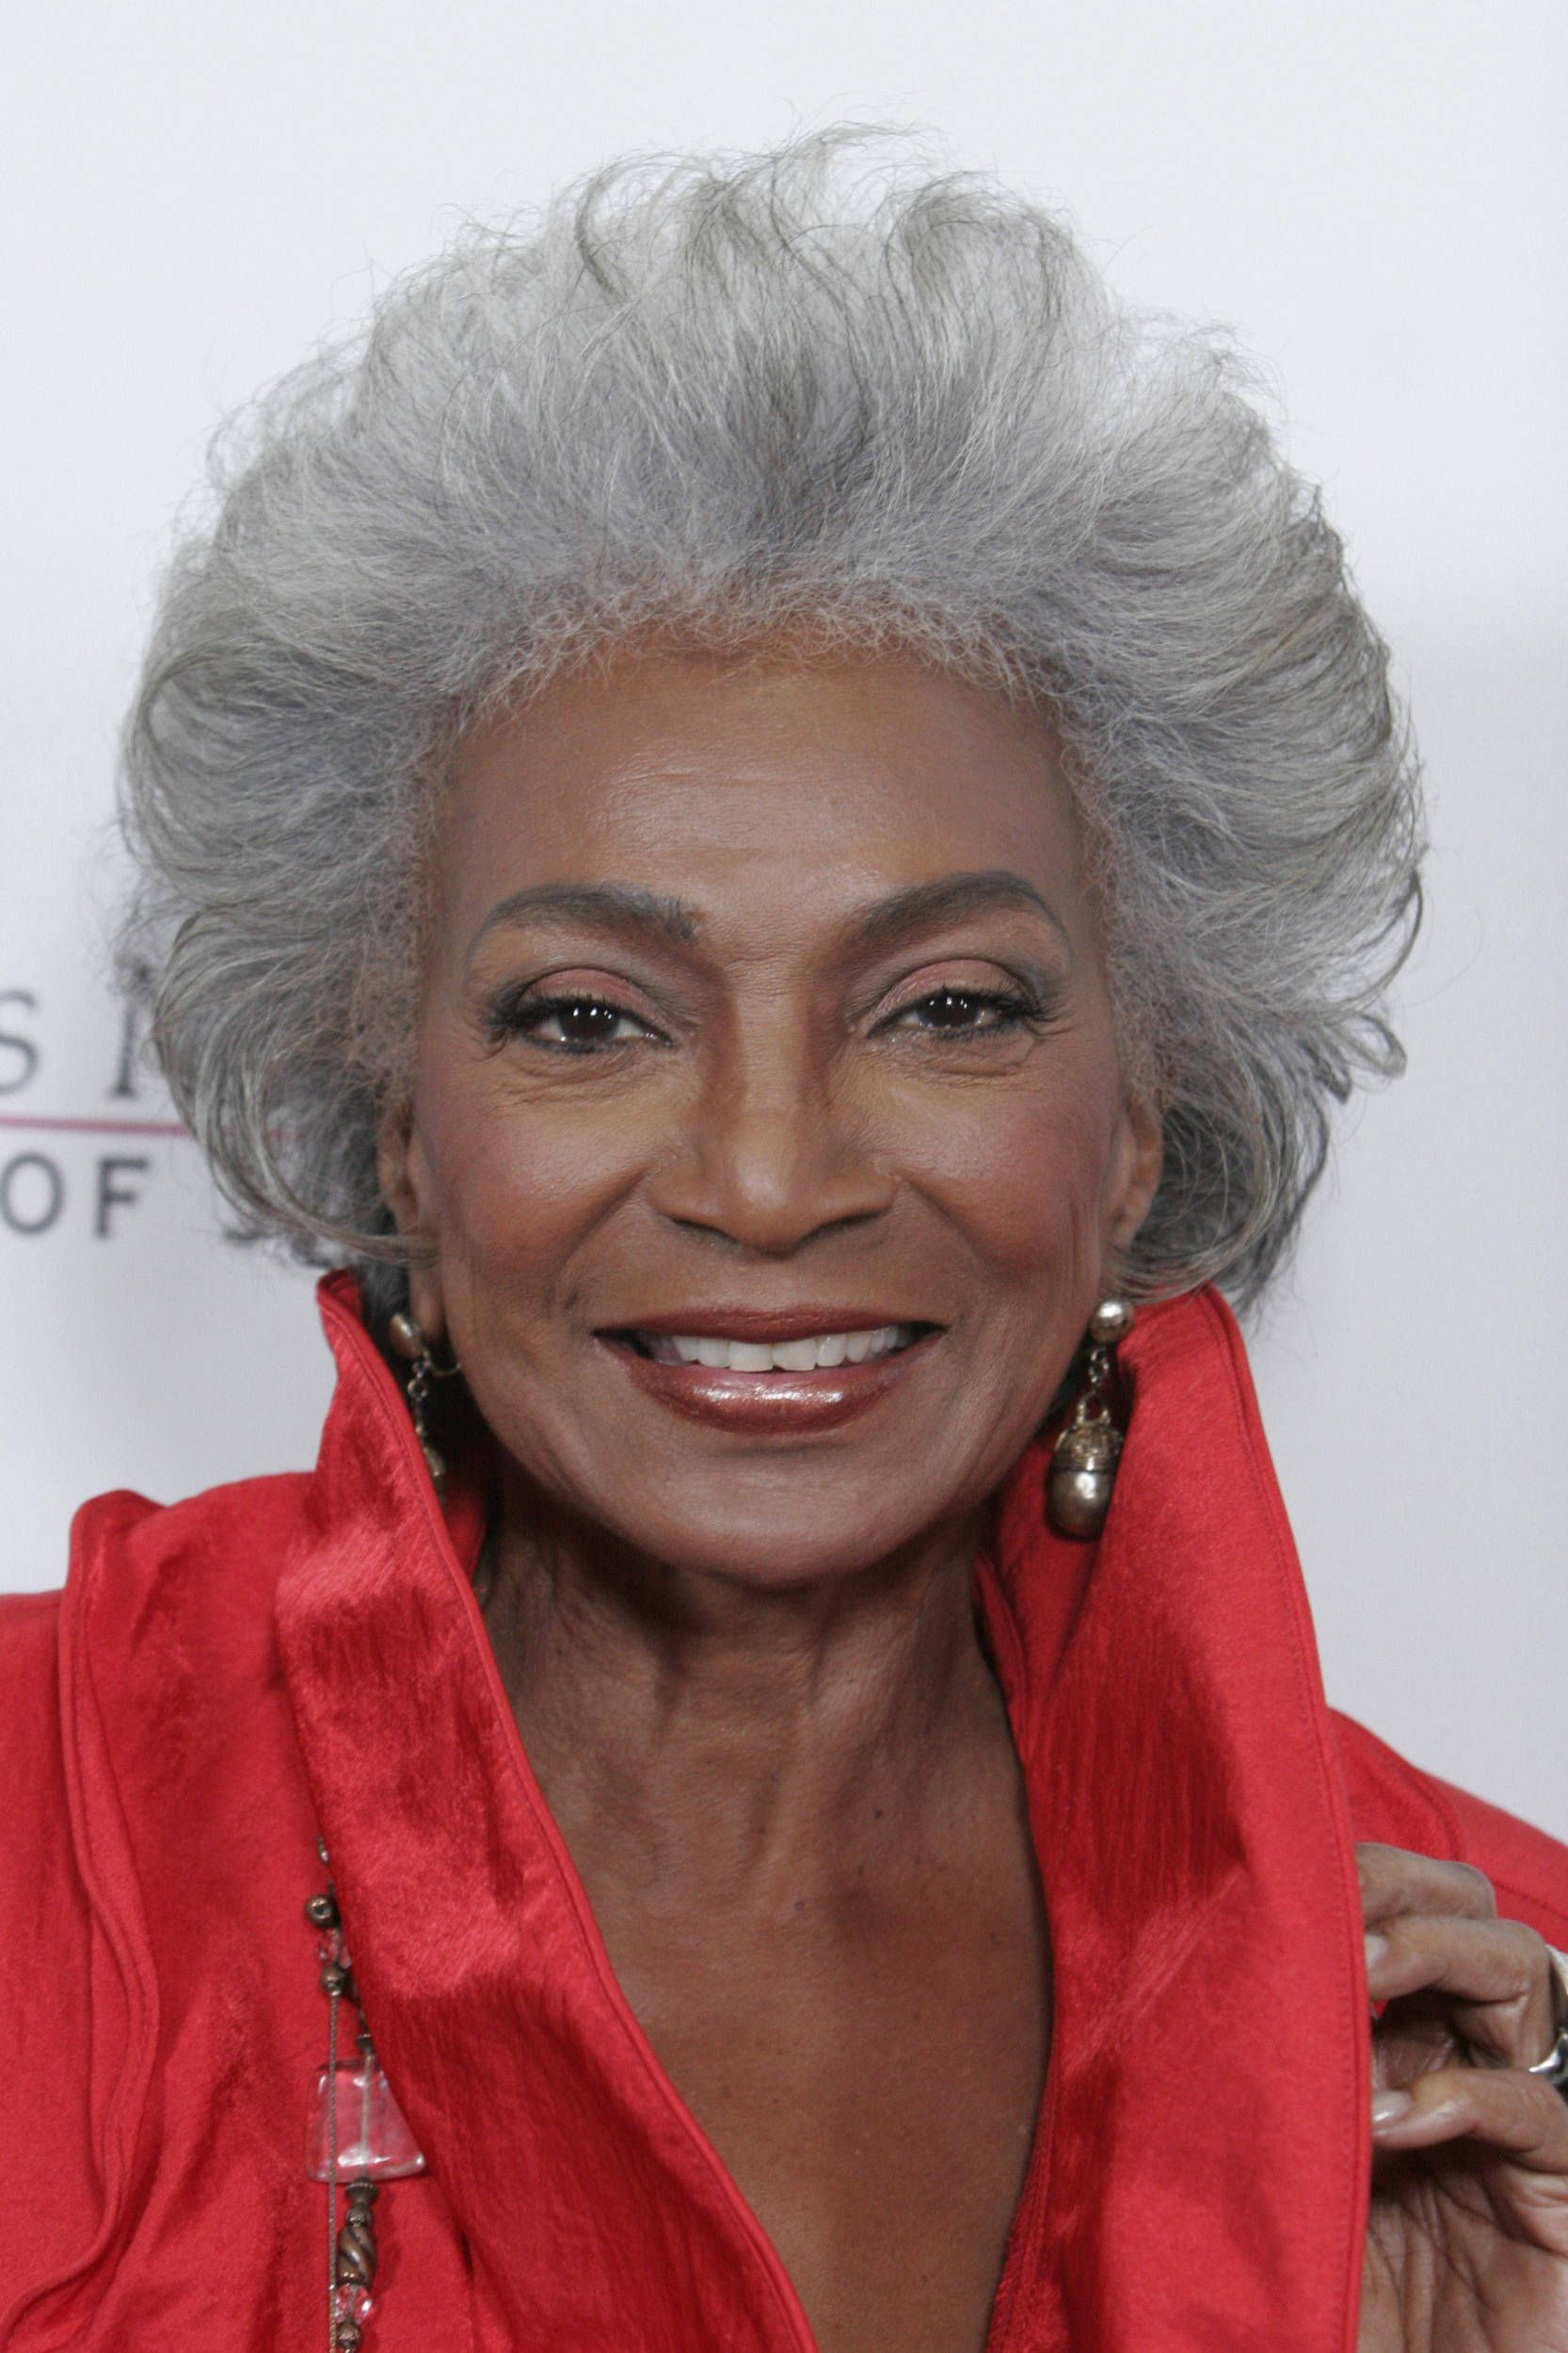 Nichelle Nichols born December 28, 1932 (age 85) nudes (74 photos), Topless, Paparazzi, Twitter, cleavage 2006